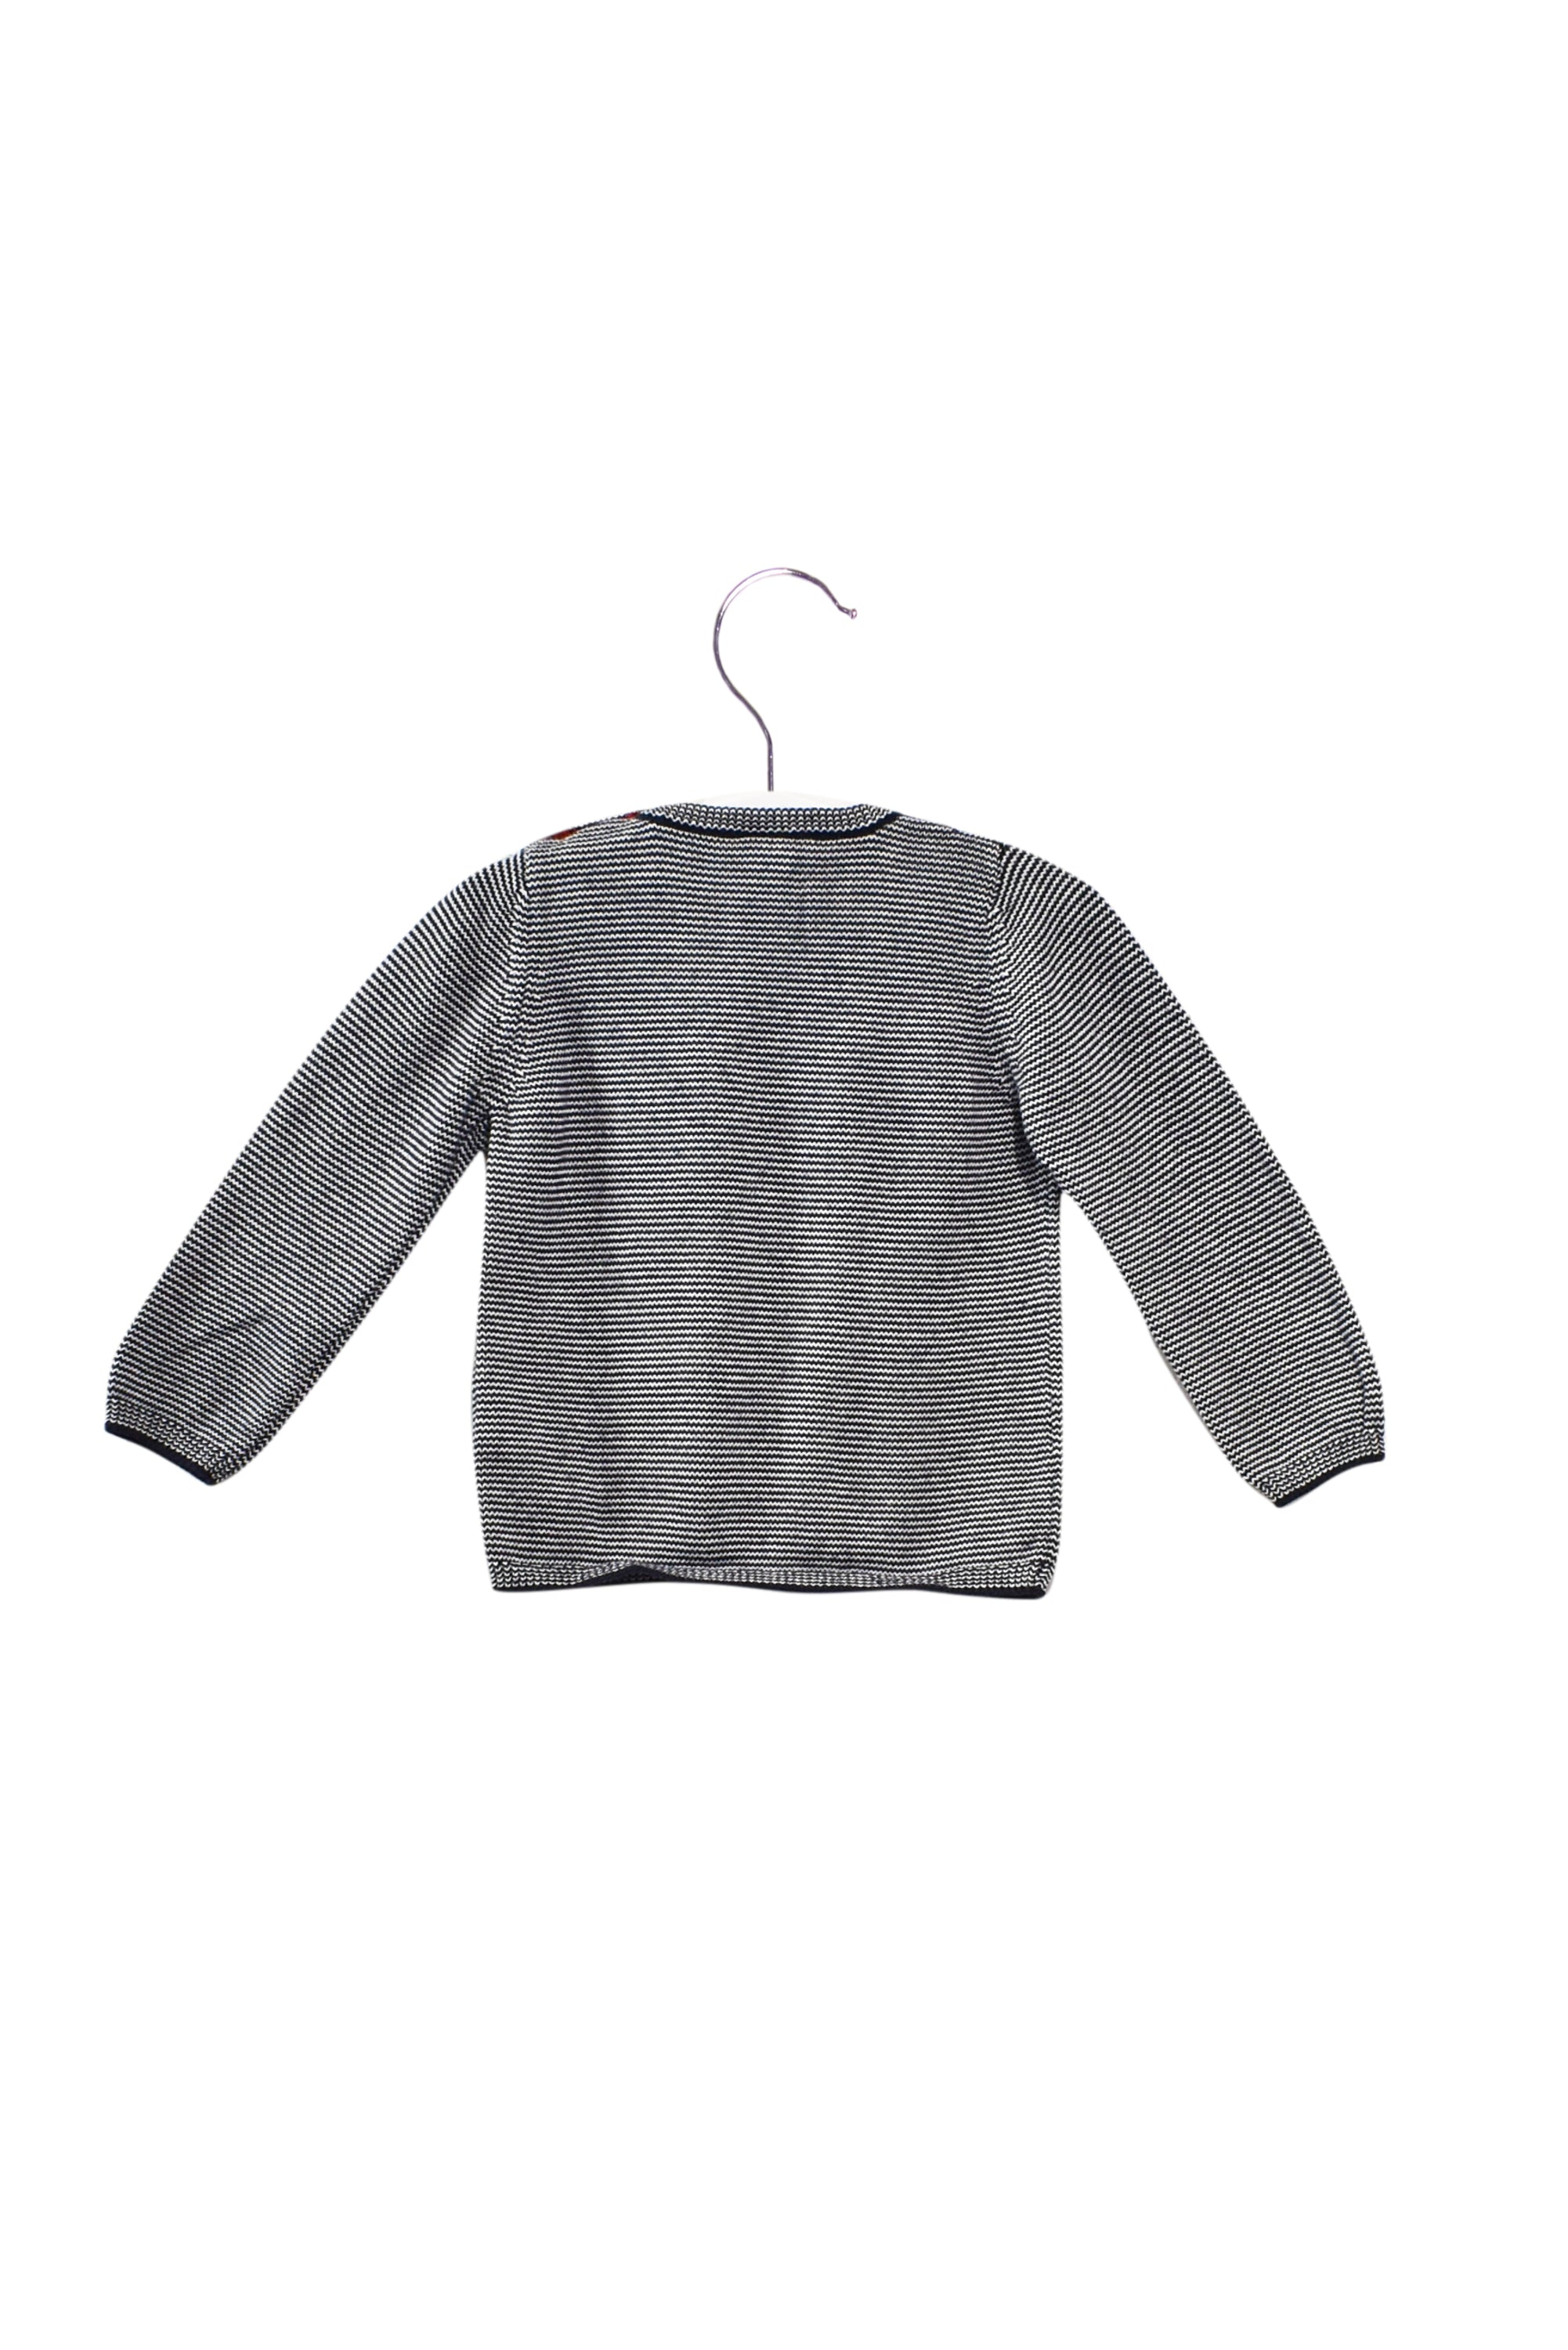 10028007 Petit Bateau Baby~Sweater 18M at Retykle